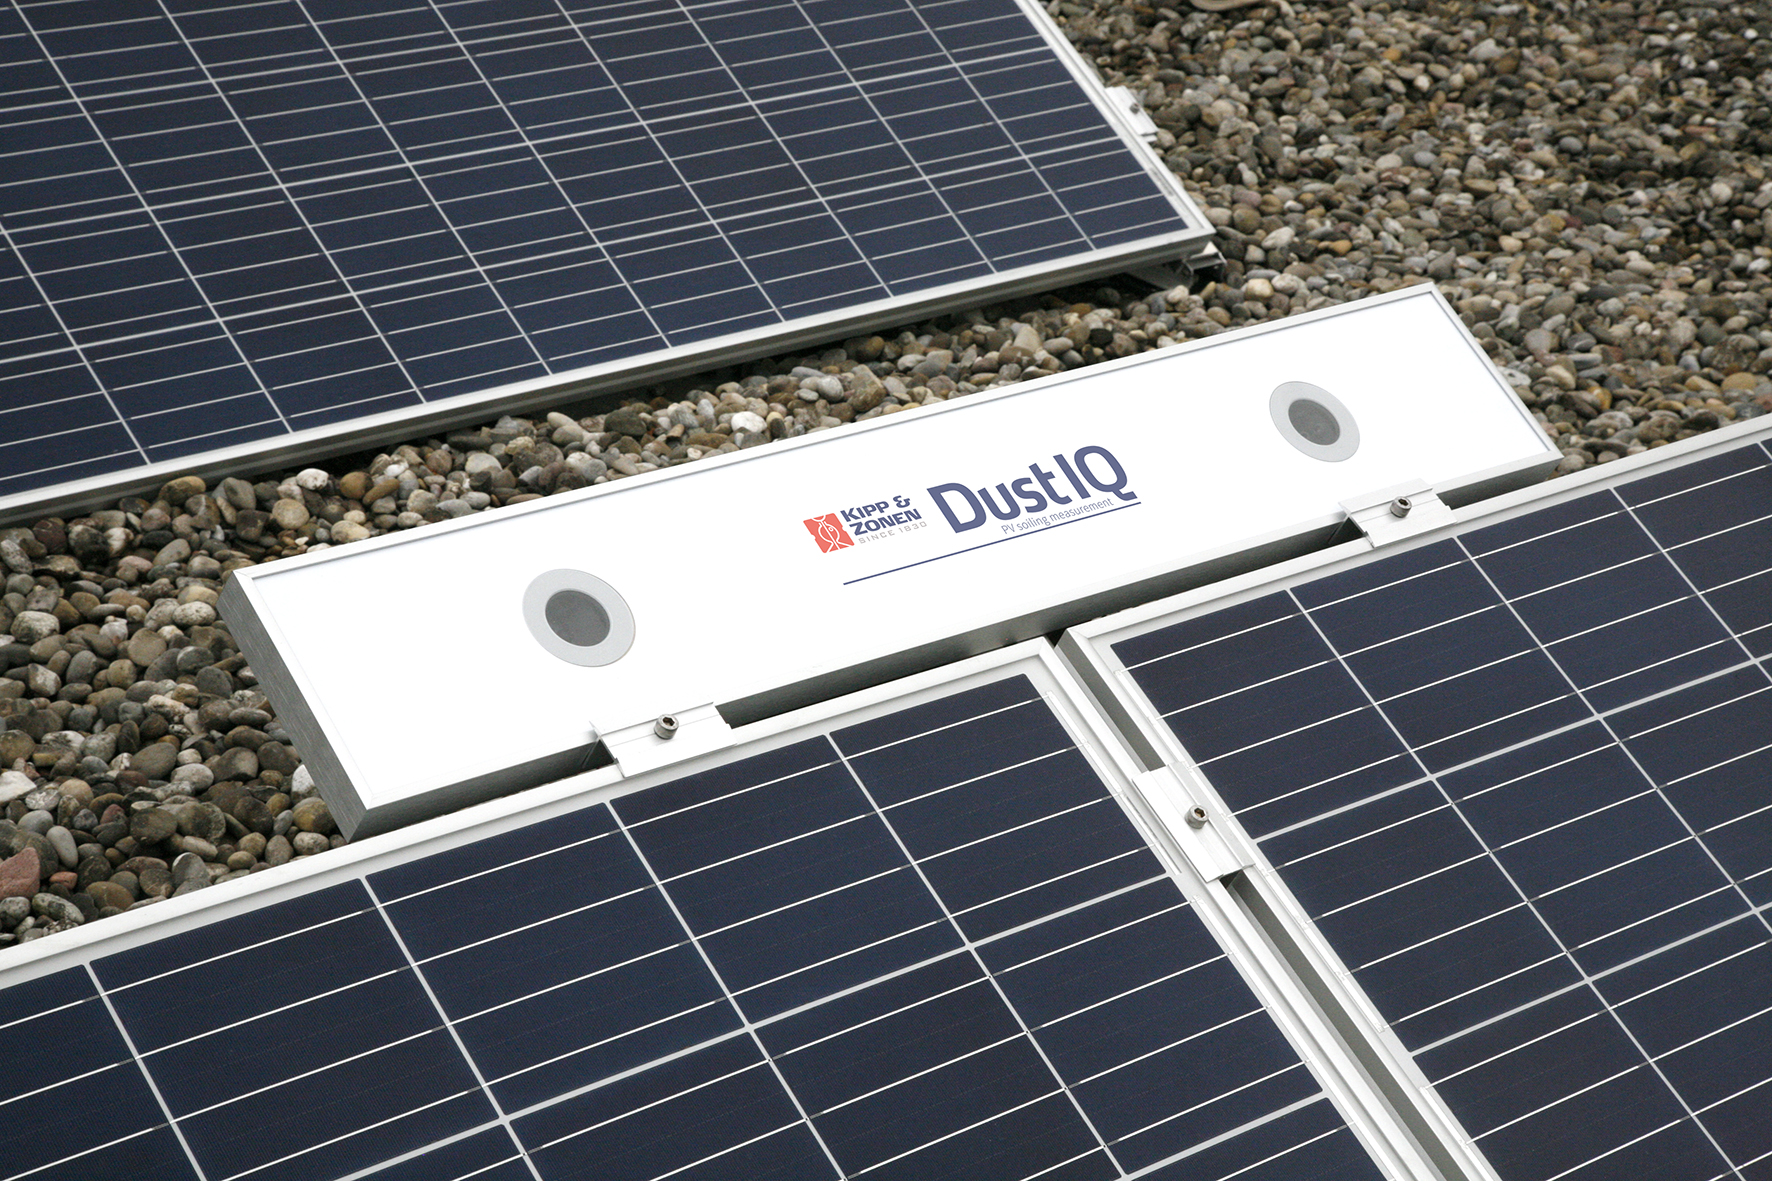 'DustIQ' measures the soiling ratio (SR) and can be easily added to new or existing solar arrays and integrated into plant management systems.Image: Kipp & Zonen